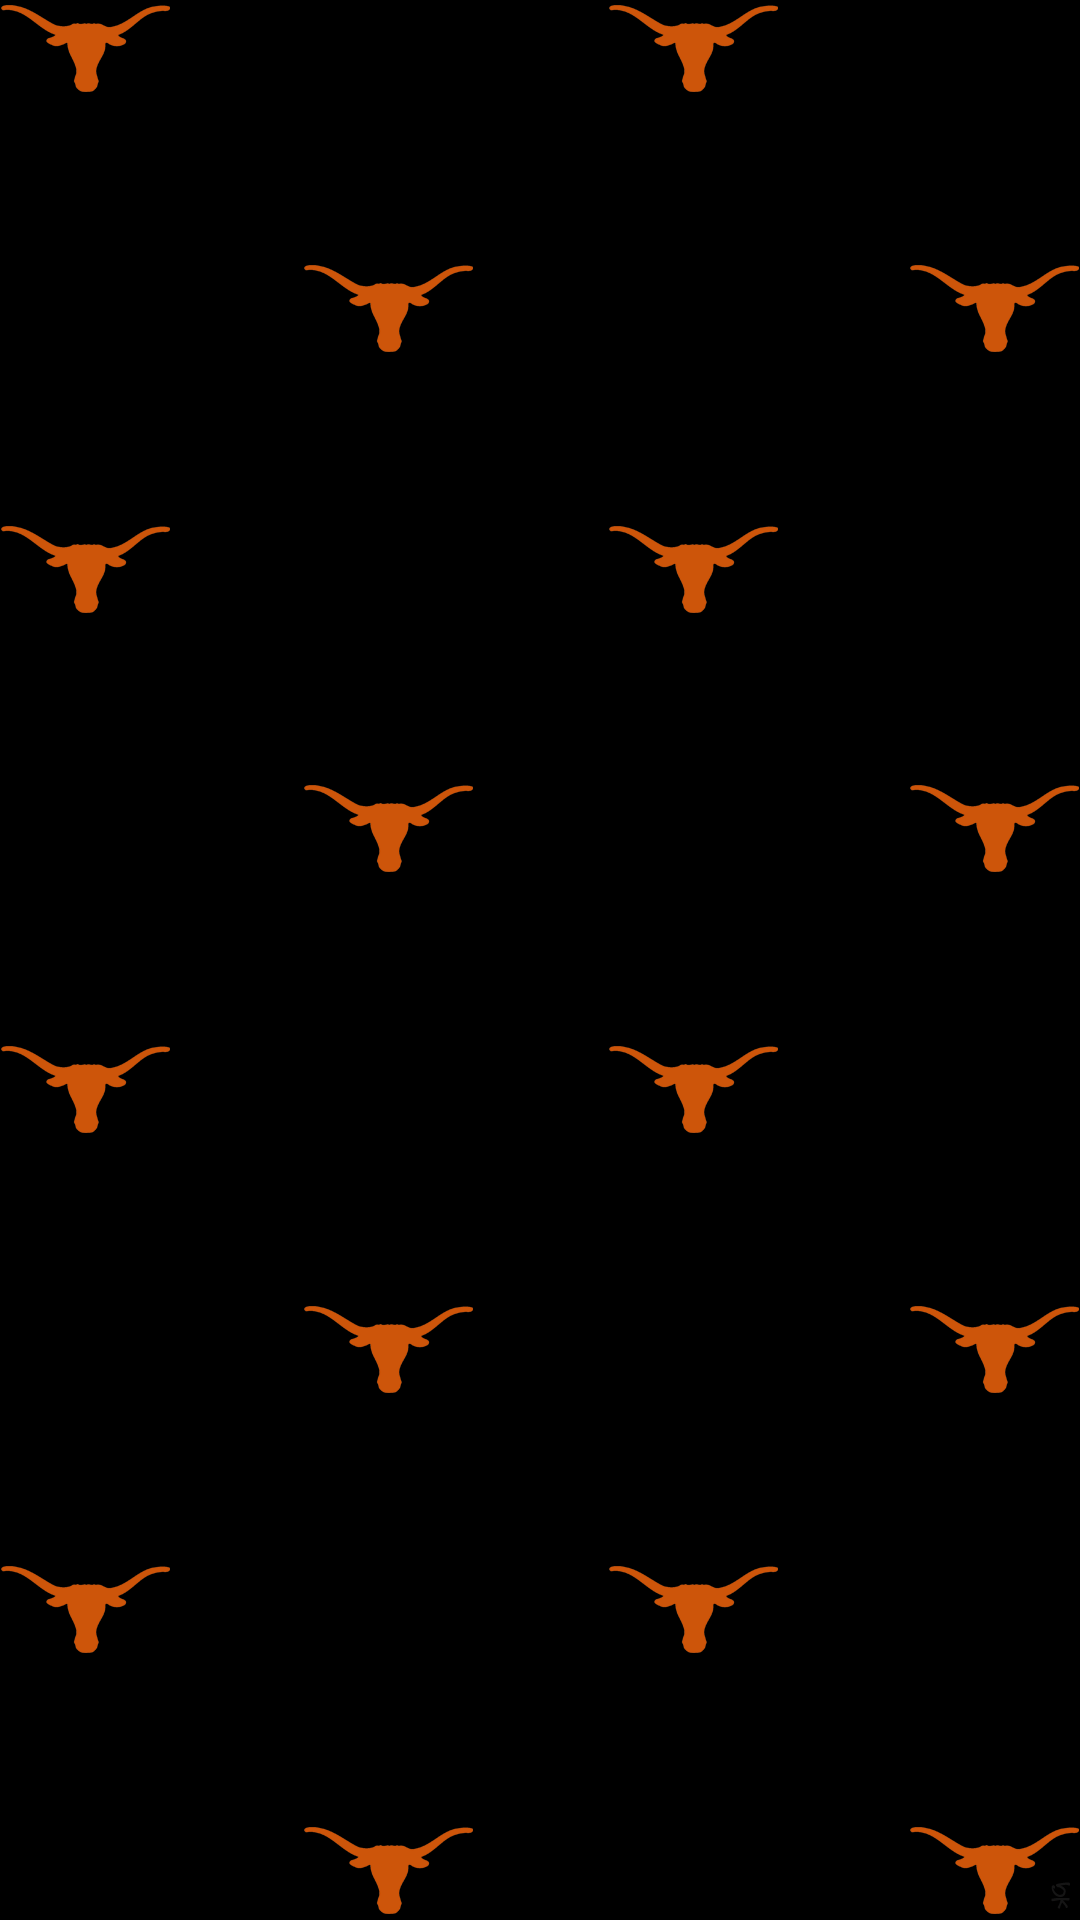 Ad146e9fbfdc7fc199f27d41e0088a99 Png 1 080 1 920 Pixels Texas Longhorns Logo Texas Longhorns Football Longhorns Football